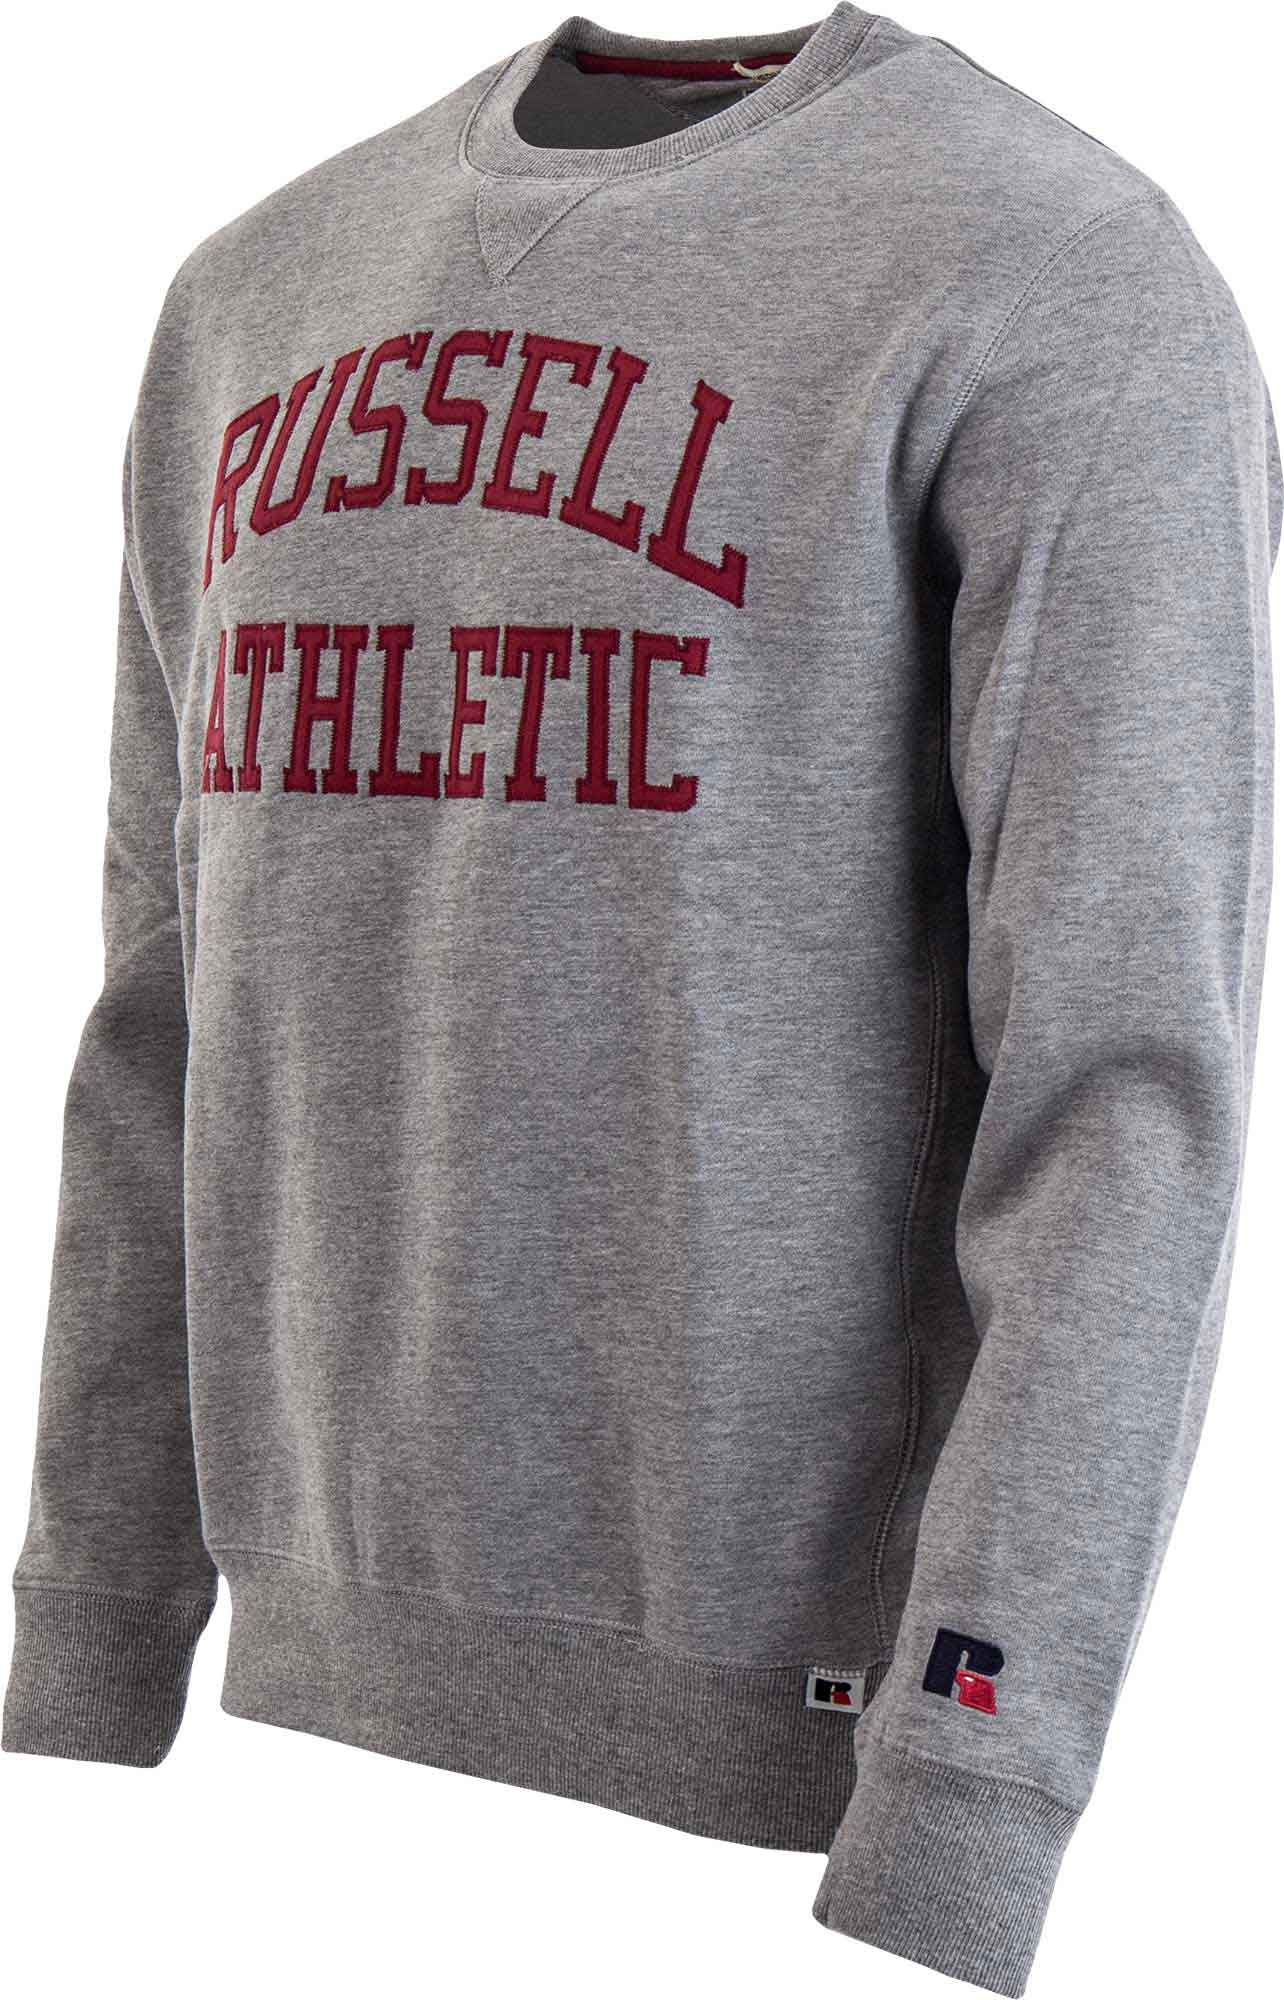 Russell Athletic CREW NECK SWEAT | sportisimo.com